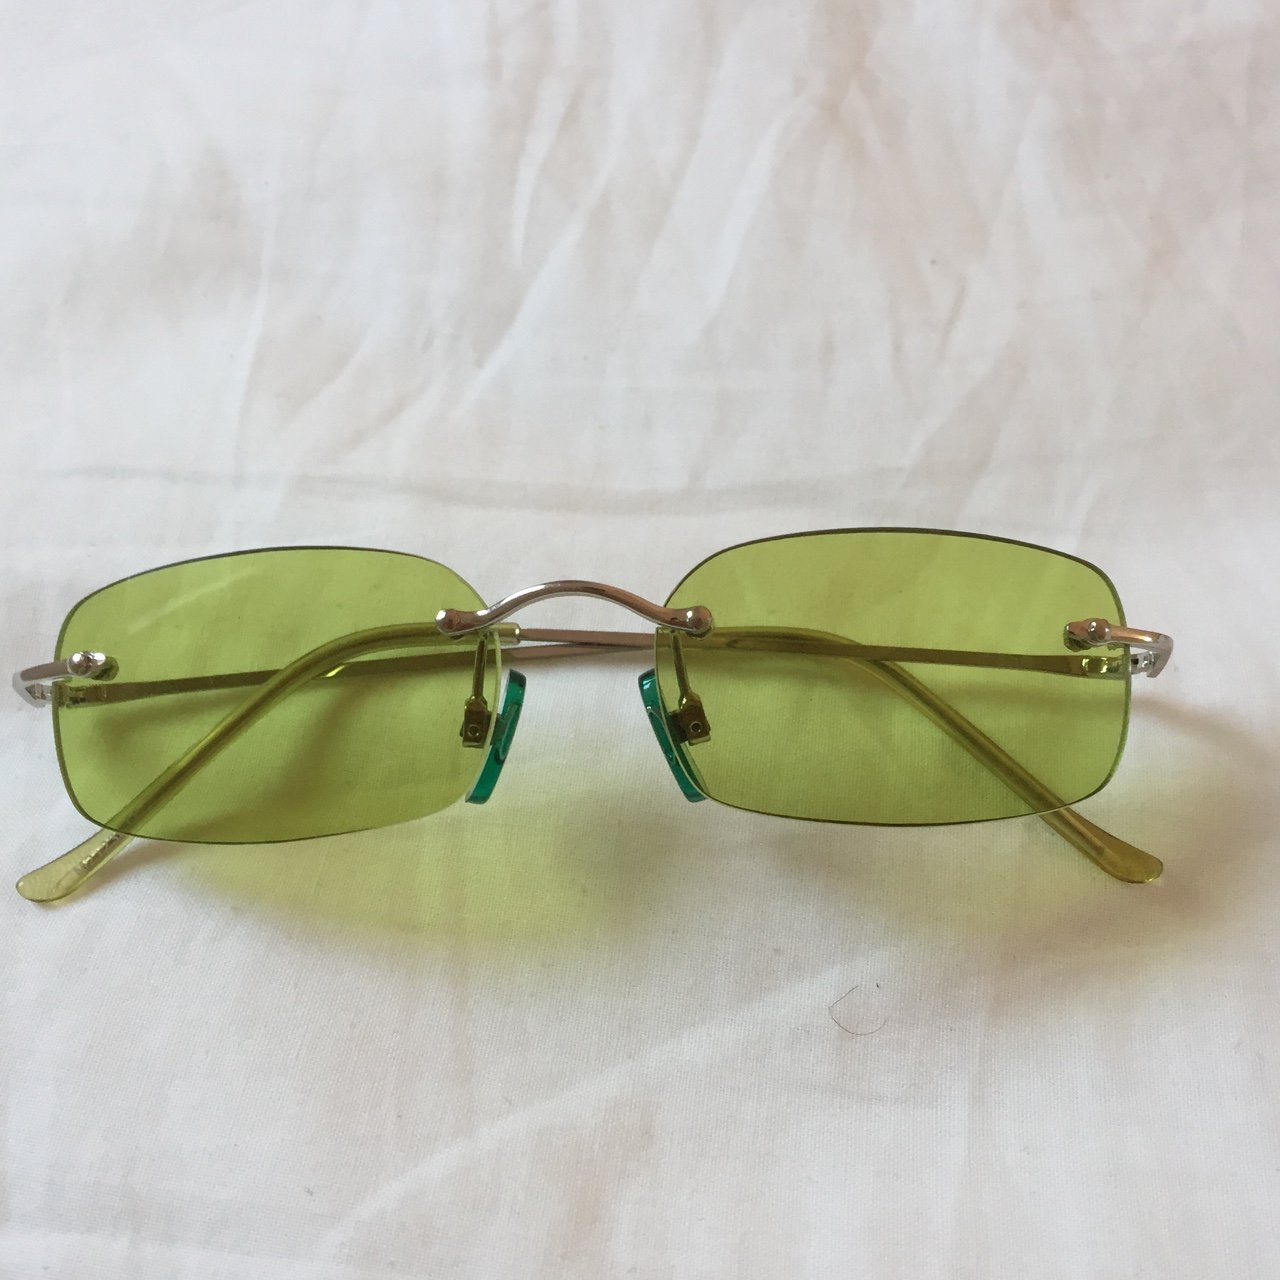 464cffff8d9 SUPER COOL vintage sunglasses! retro green tinted rimless - - Depop